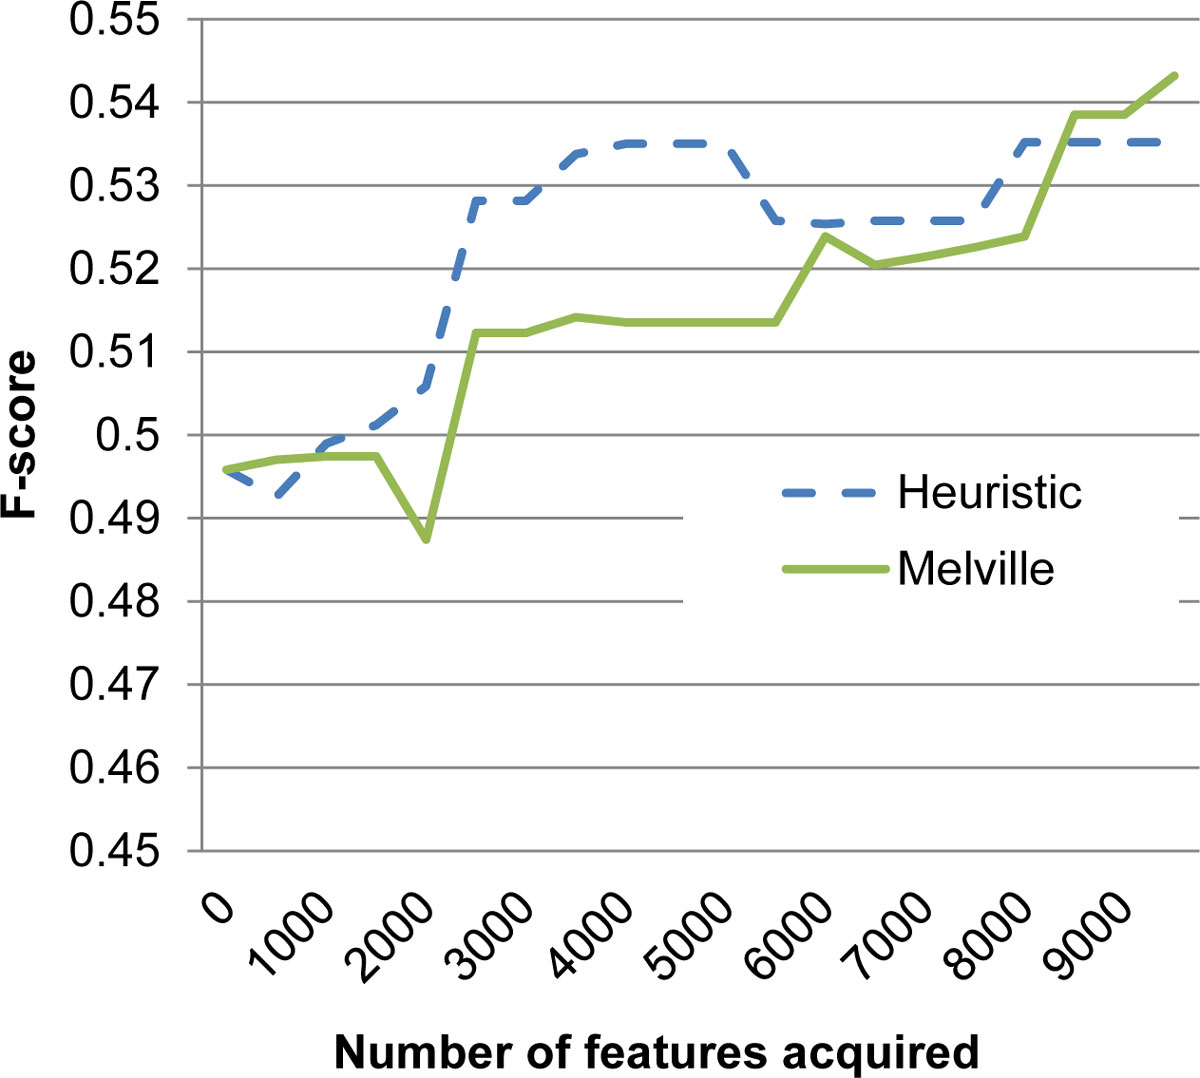 http://static-content.springer.com/image/art%3A10.1186%2F1753-6561-6-S7-S2/MediaObjects/12919_2012_Article_1555_Fig2_HTML.jpg